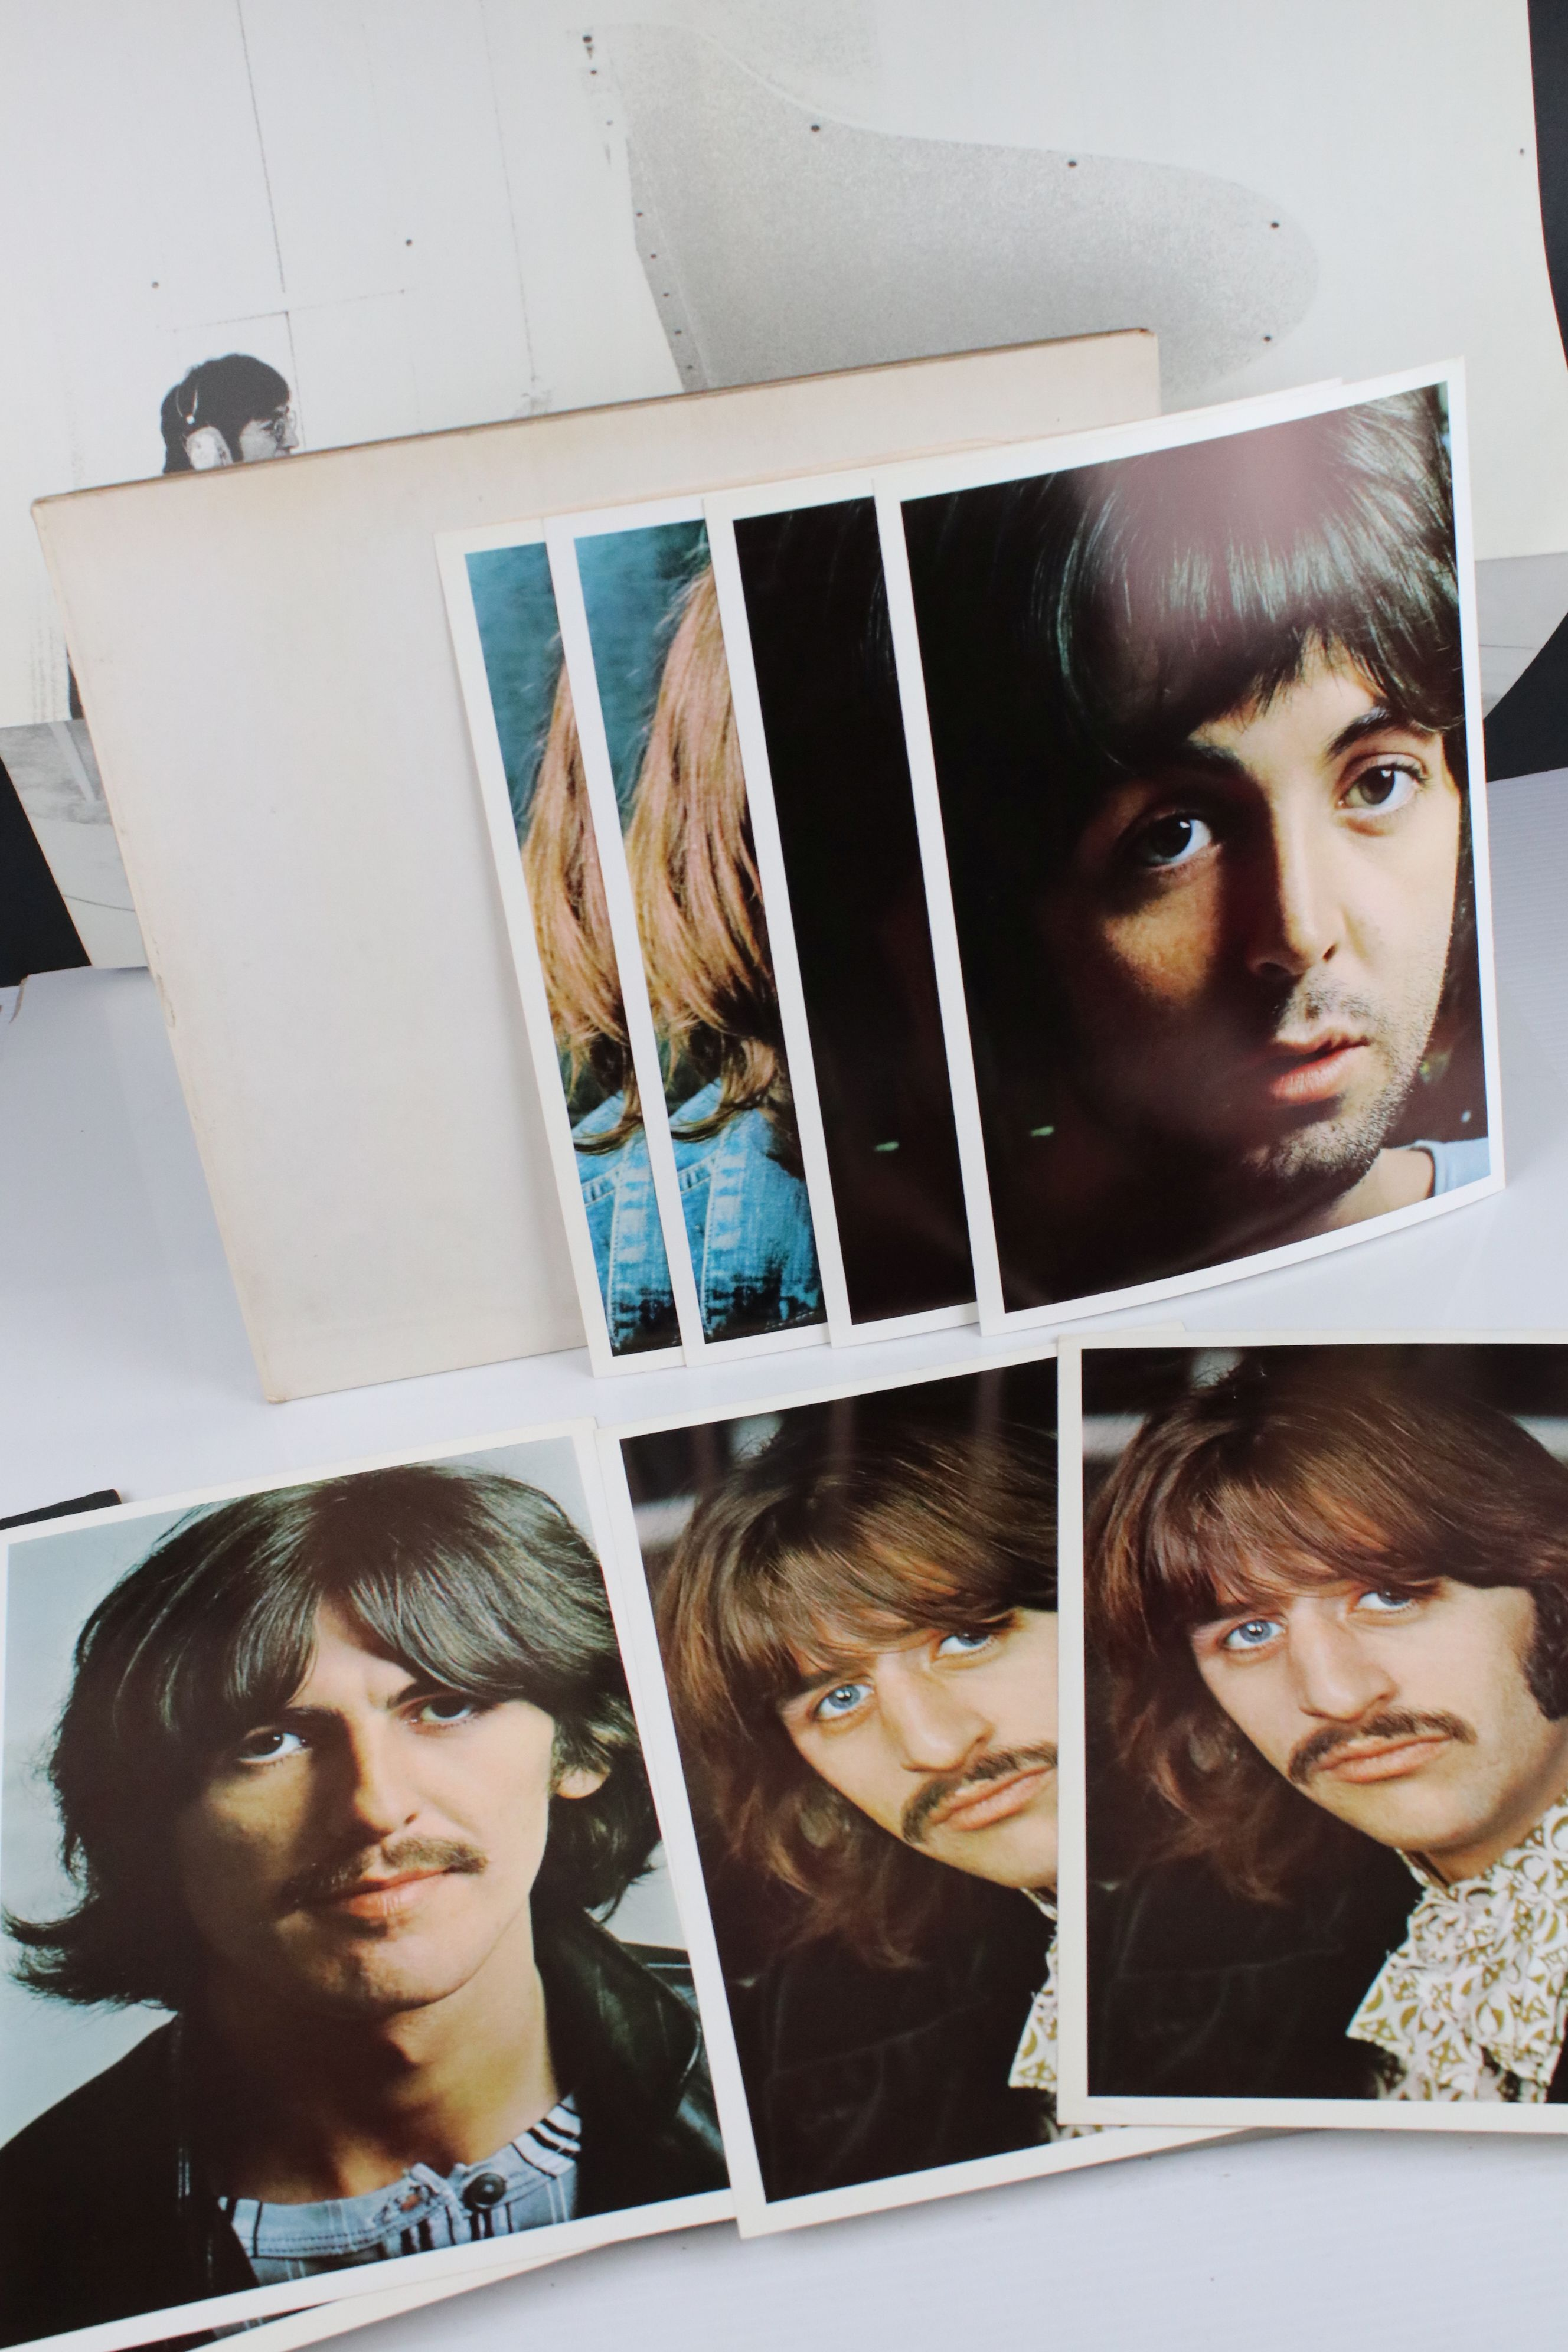 Vinyl - The Beatles White Album LP mono PMC7067-8, numbered 0001376 with 8 x coloured prints and - Image 6 of 10